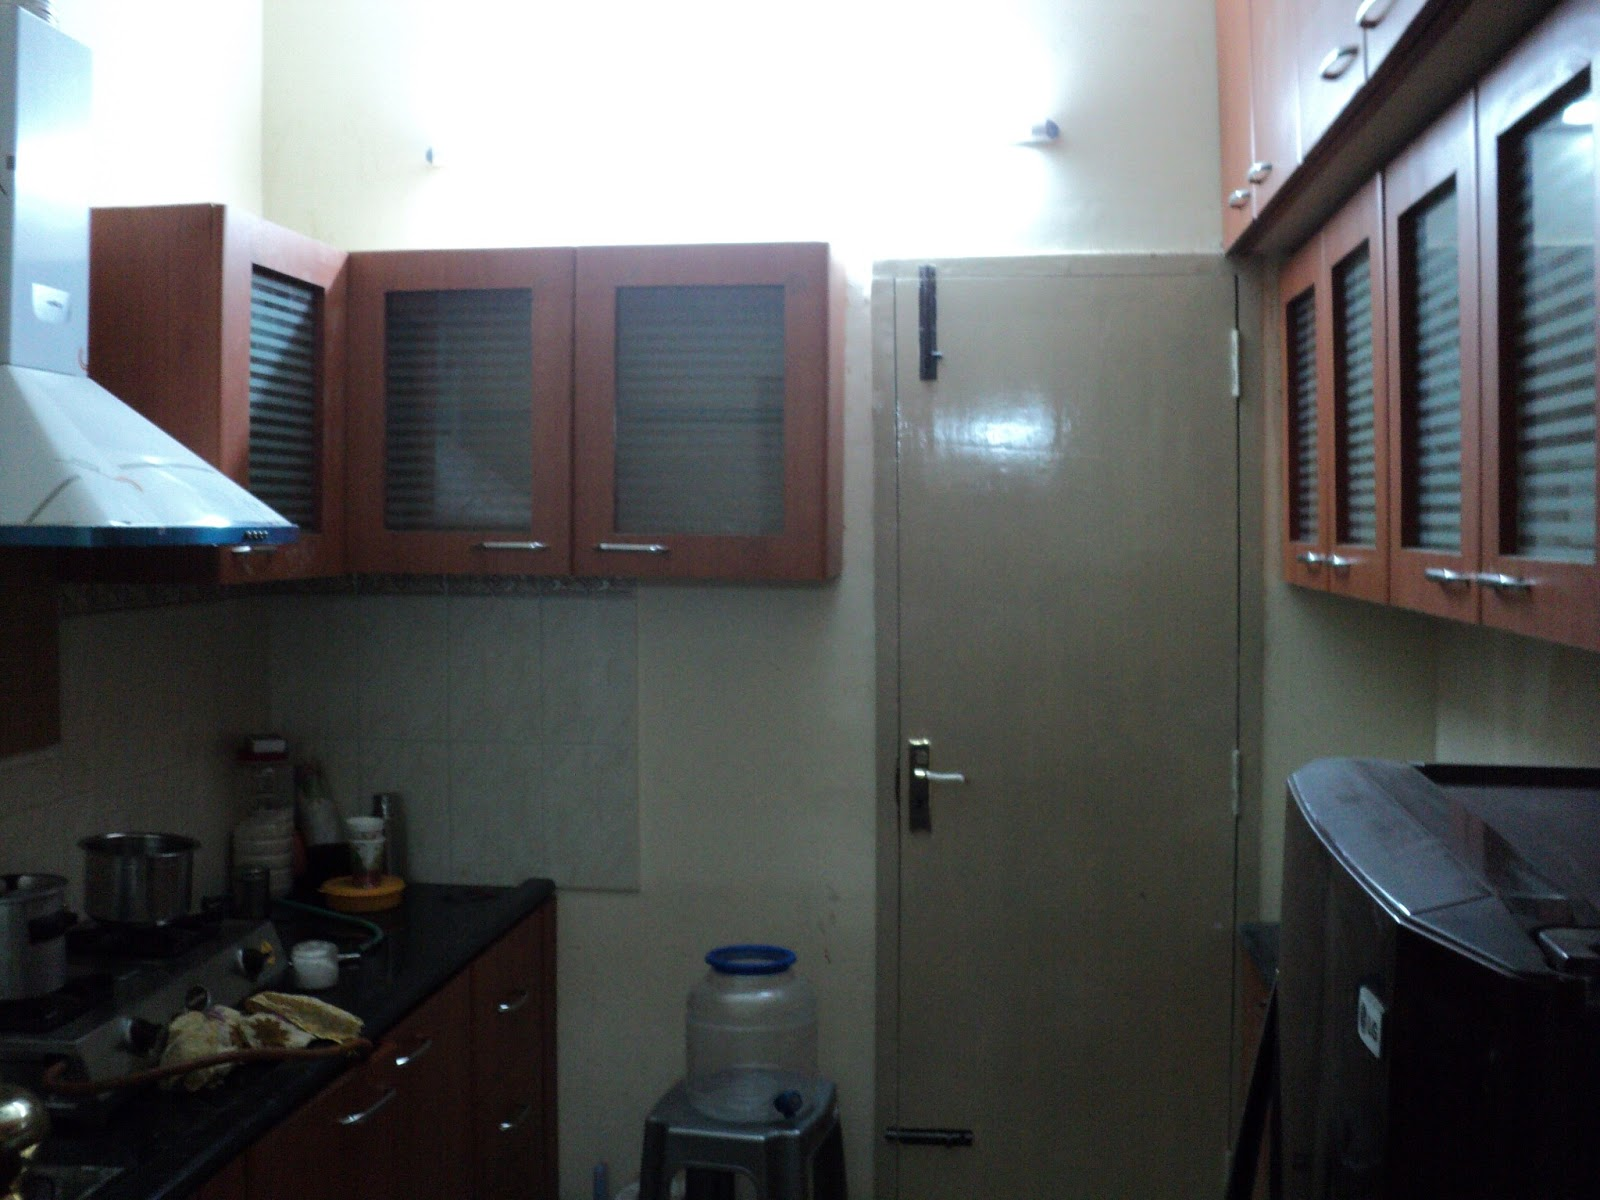 Modular Kitchen in Chennai | Designs Of Modular Kitchen on modular kitchen in bangalore, modular kitchen in hyderabad, modular kitchen in mumbai, modular kitchen in kerala, marriage halls in chennai,